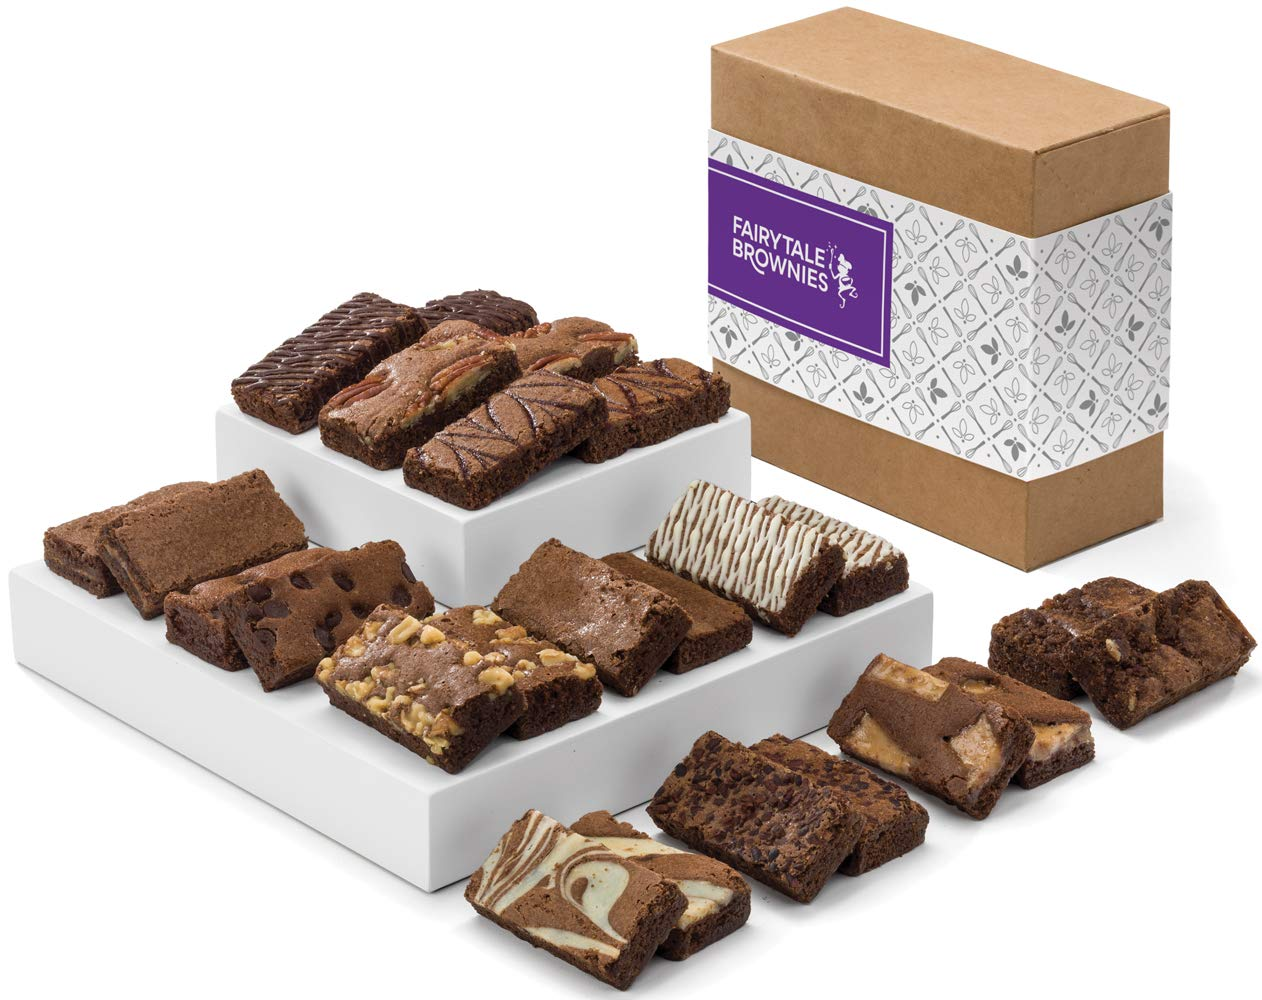 Fairytale Brownies Sprite 24 Gourmet Chocolate Food Gift Basket - 3 Inch x 1.5 Inch Snack-Size Brownies - 24 Pieces - Item CF224